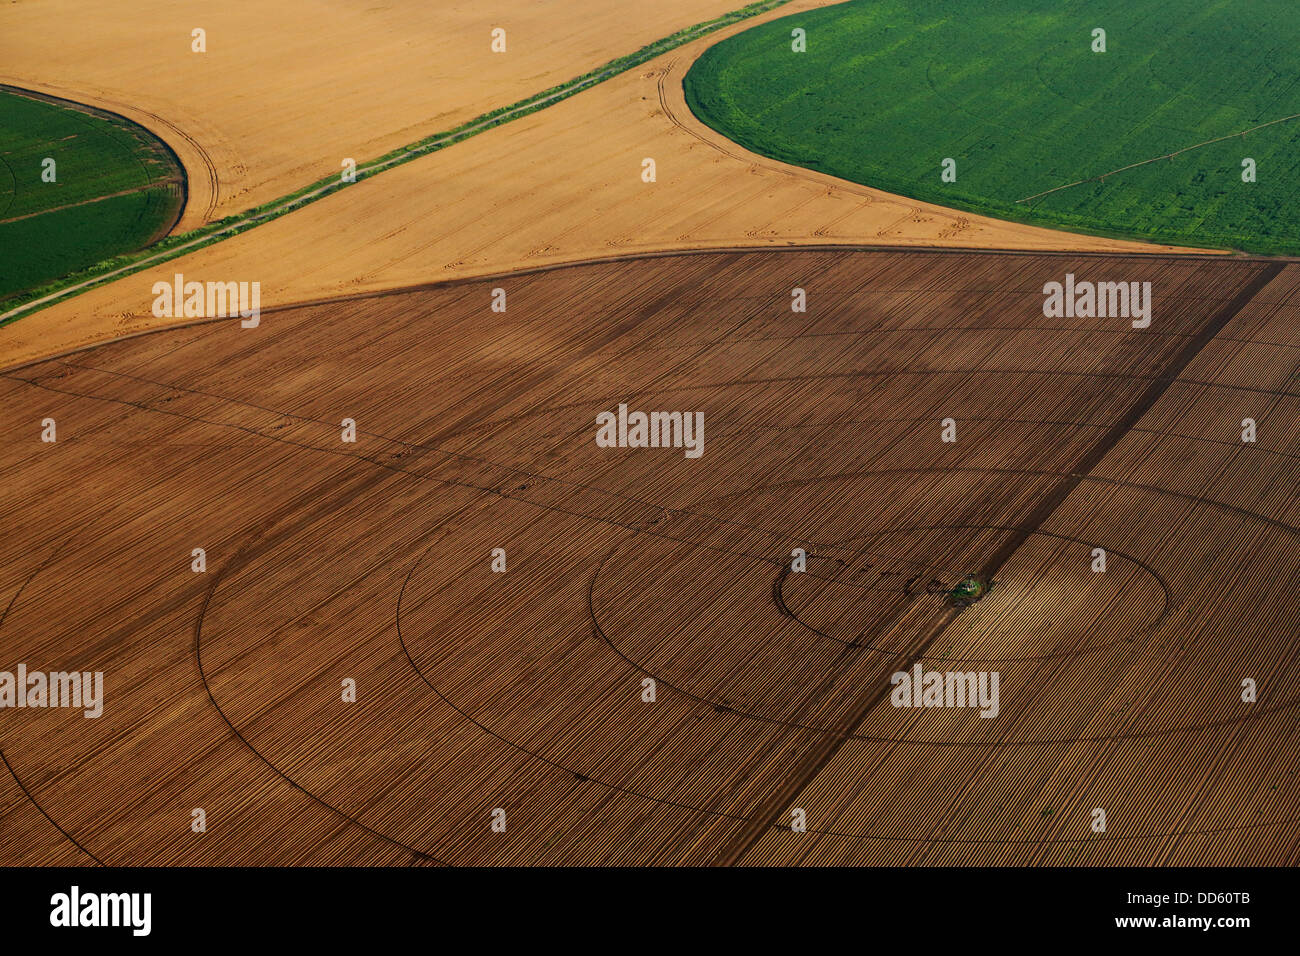 Patchwork Paysage, Croatie, Slavonie, Europe Photo Stock